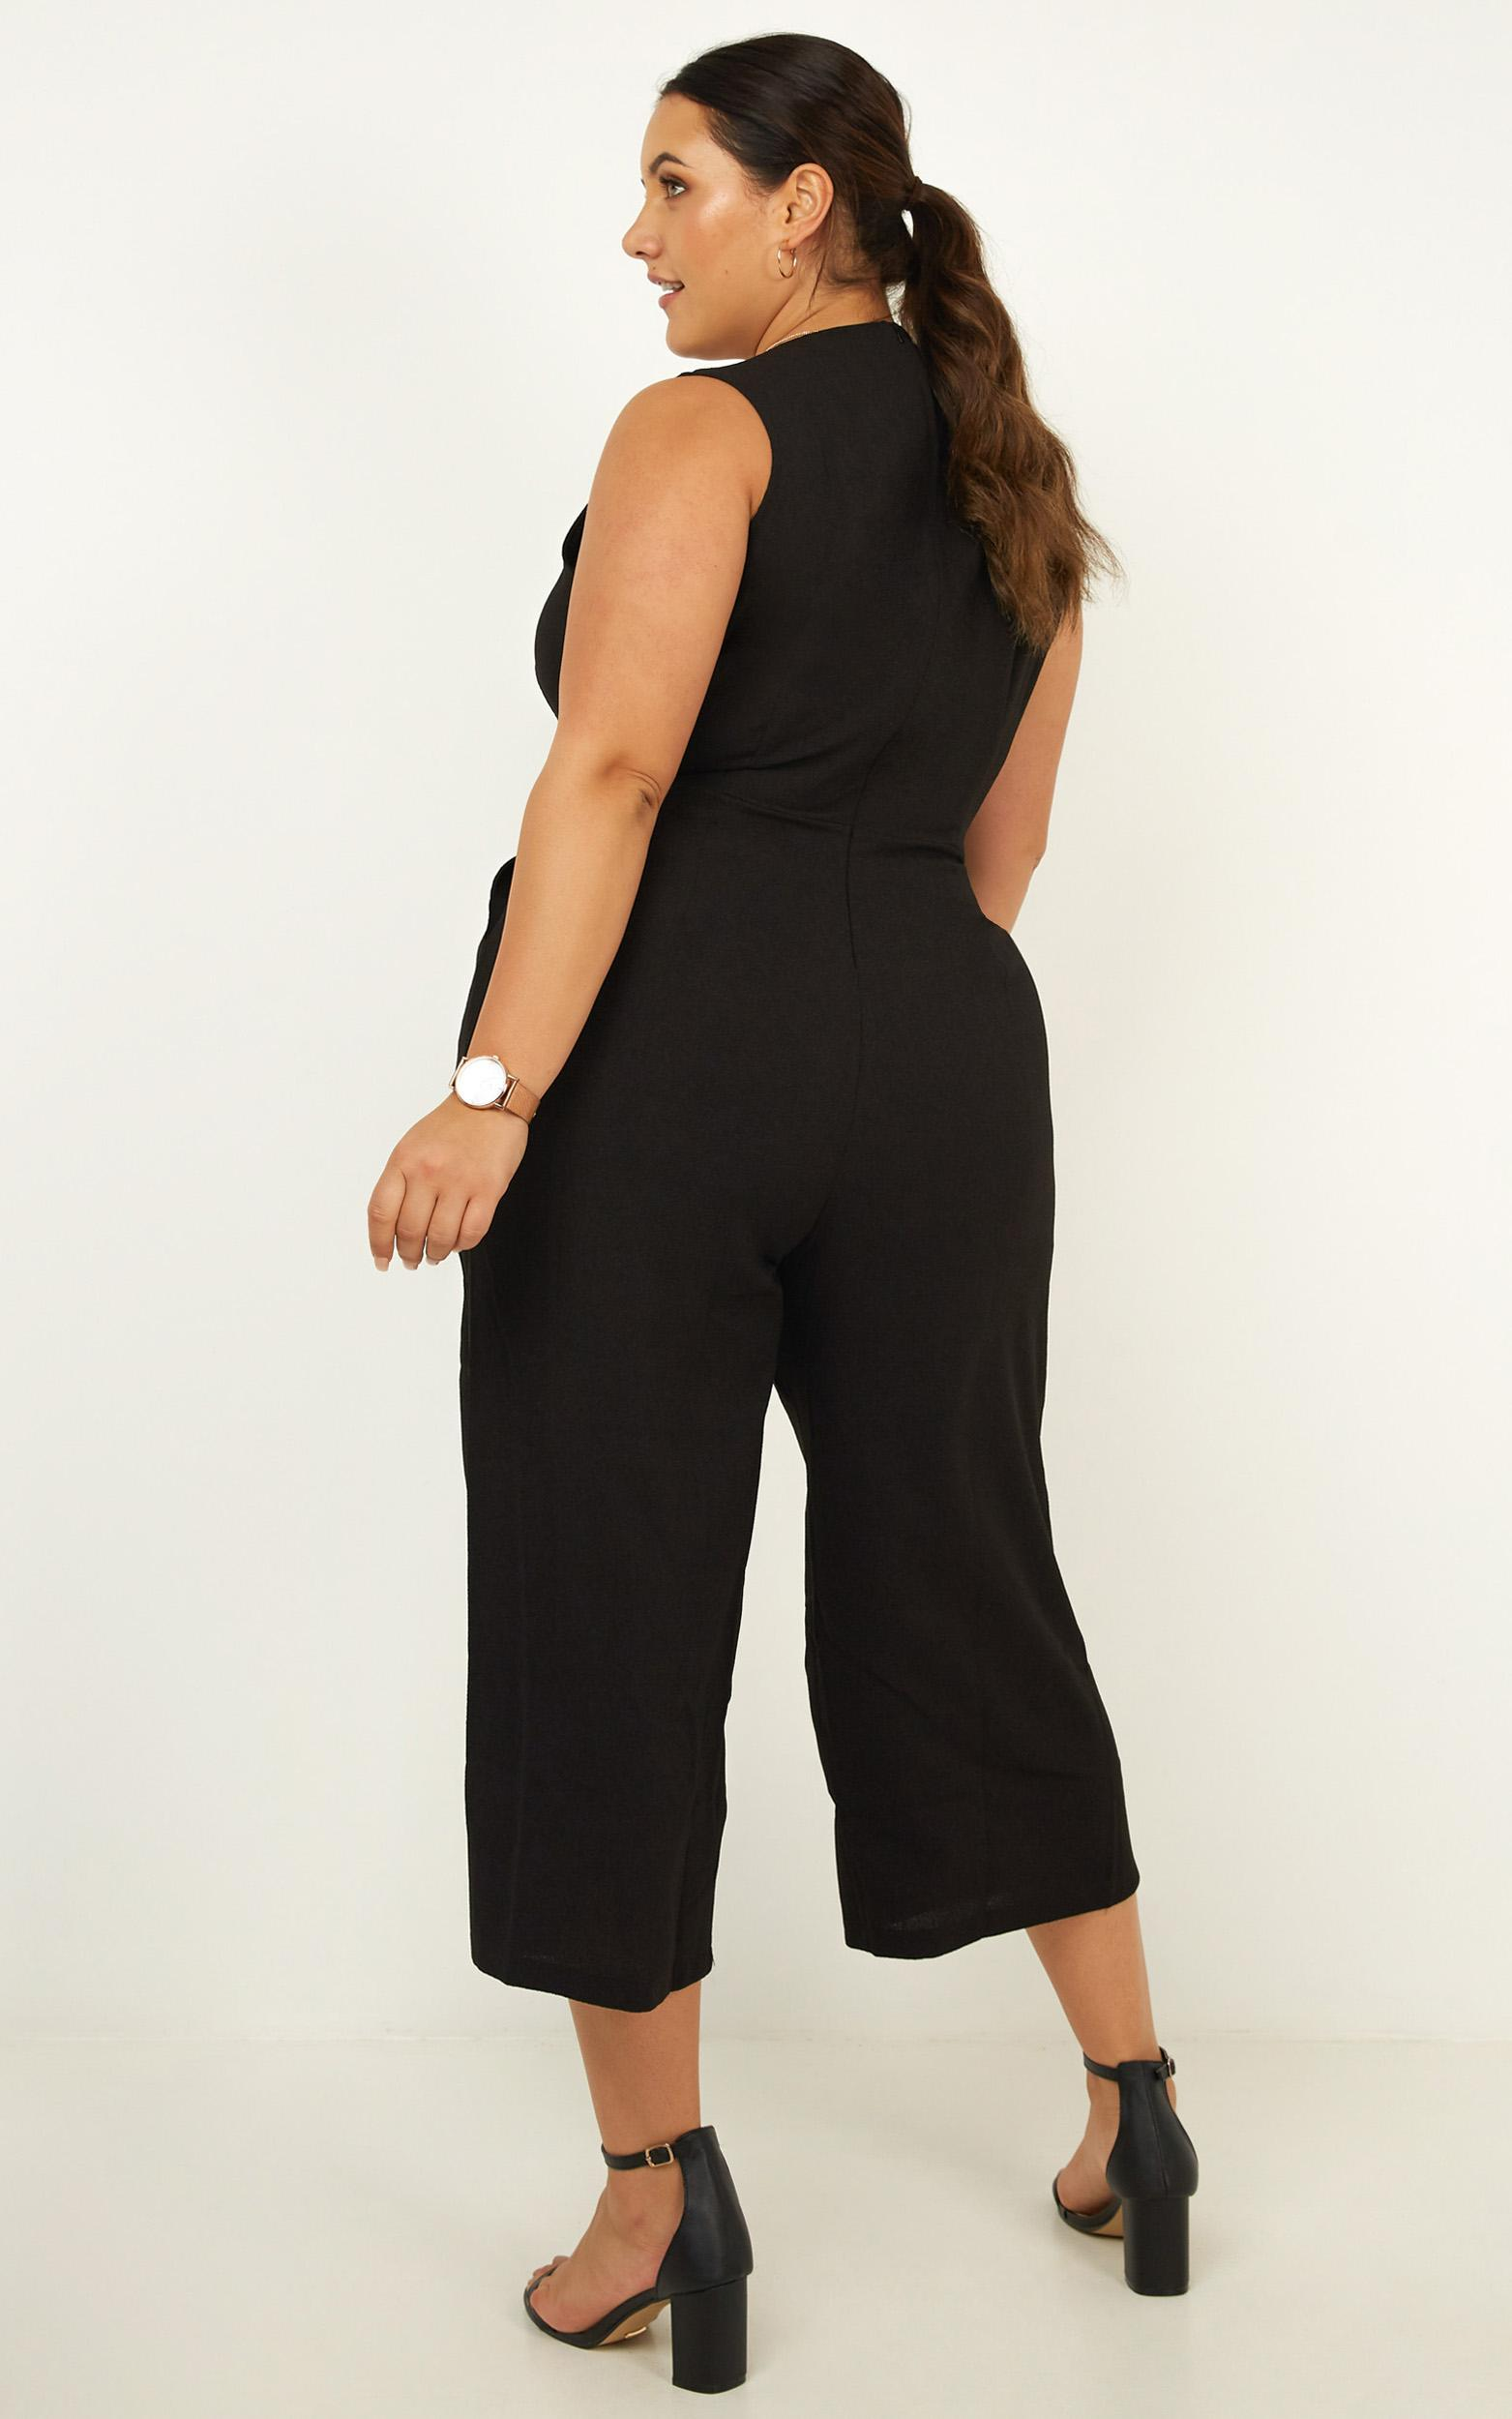 Training Day Jumpsuit in black - 20 (XXXXL), Black, hi-res image number null